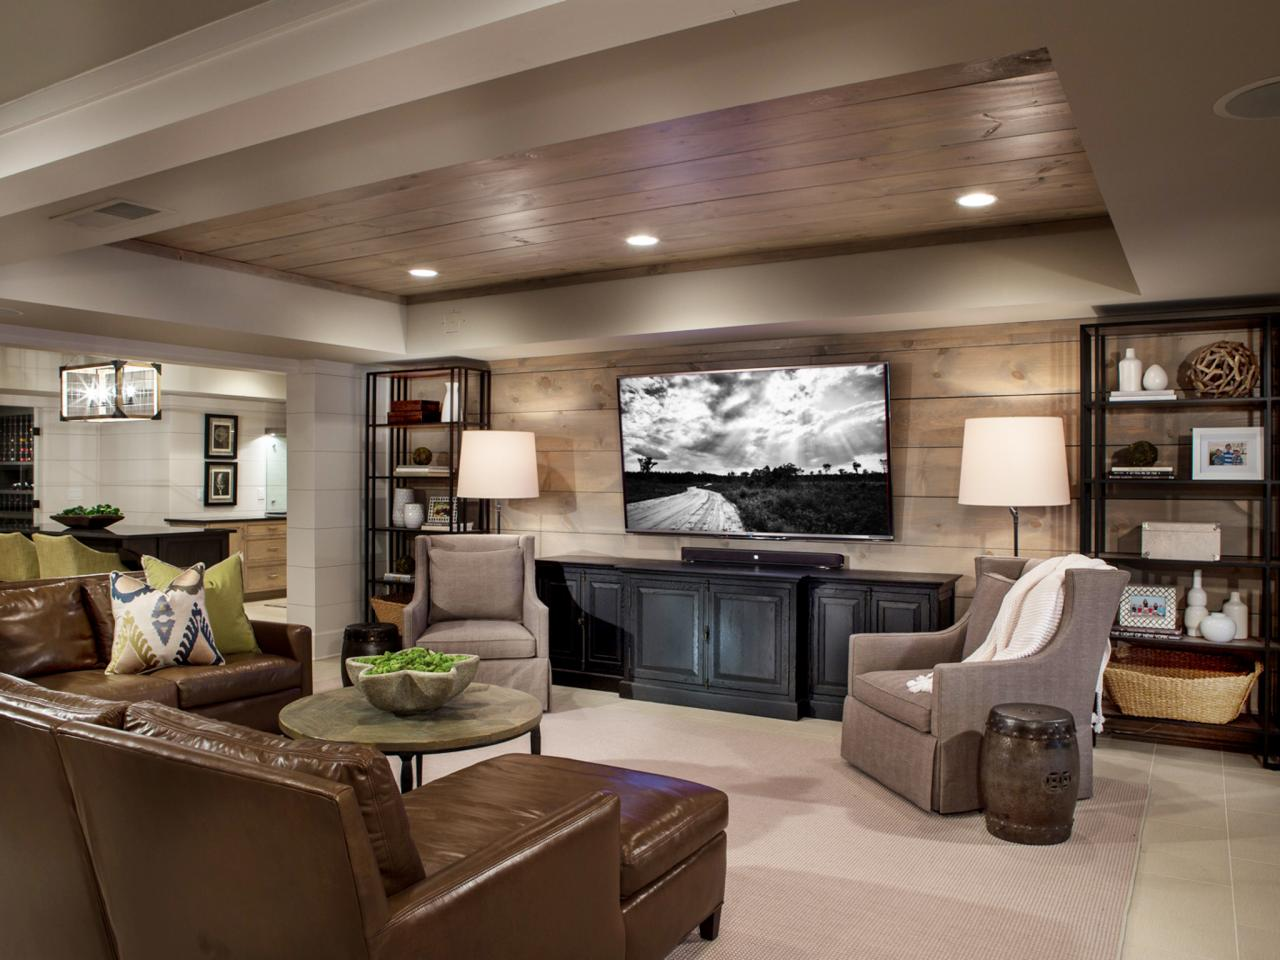 Ideas to decorate a living room theaters roy home design Home theater design ideas on a budget